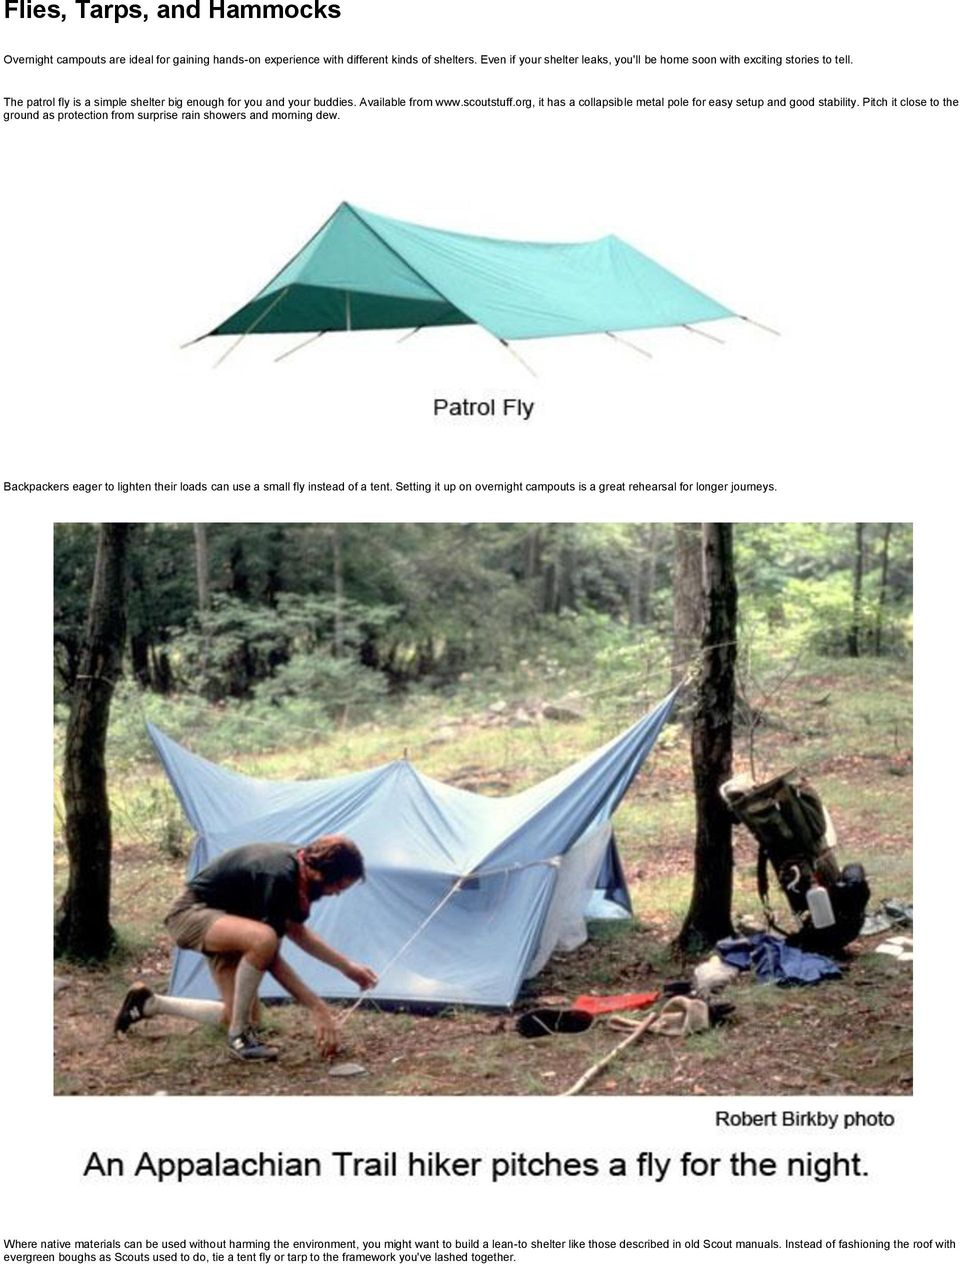 Pitch it close to the ground as protection from surprise rain showers and morning dew. Backpackers eager to lighten their loads can use a small fly instead of a tent.